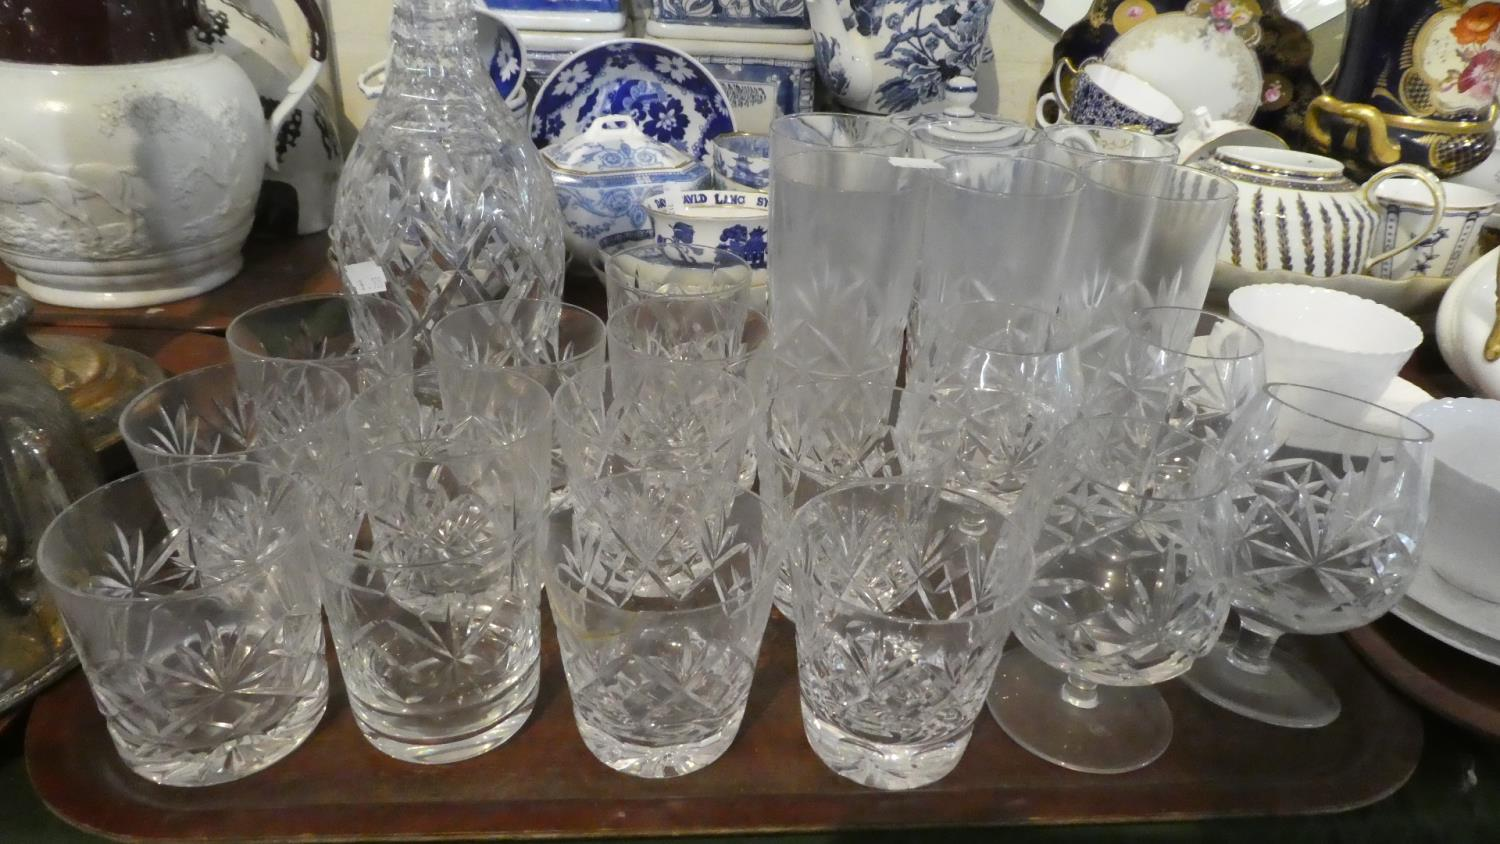 Lot 235 - A Tray Containing Various Cut Glass Whiskies, Tumblers, Brandy Balloons, Decanter